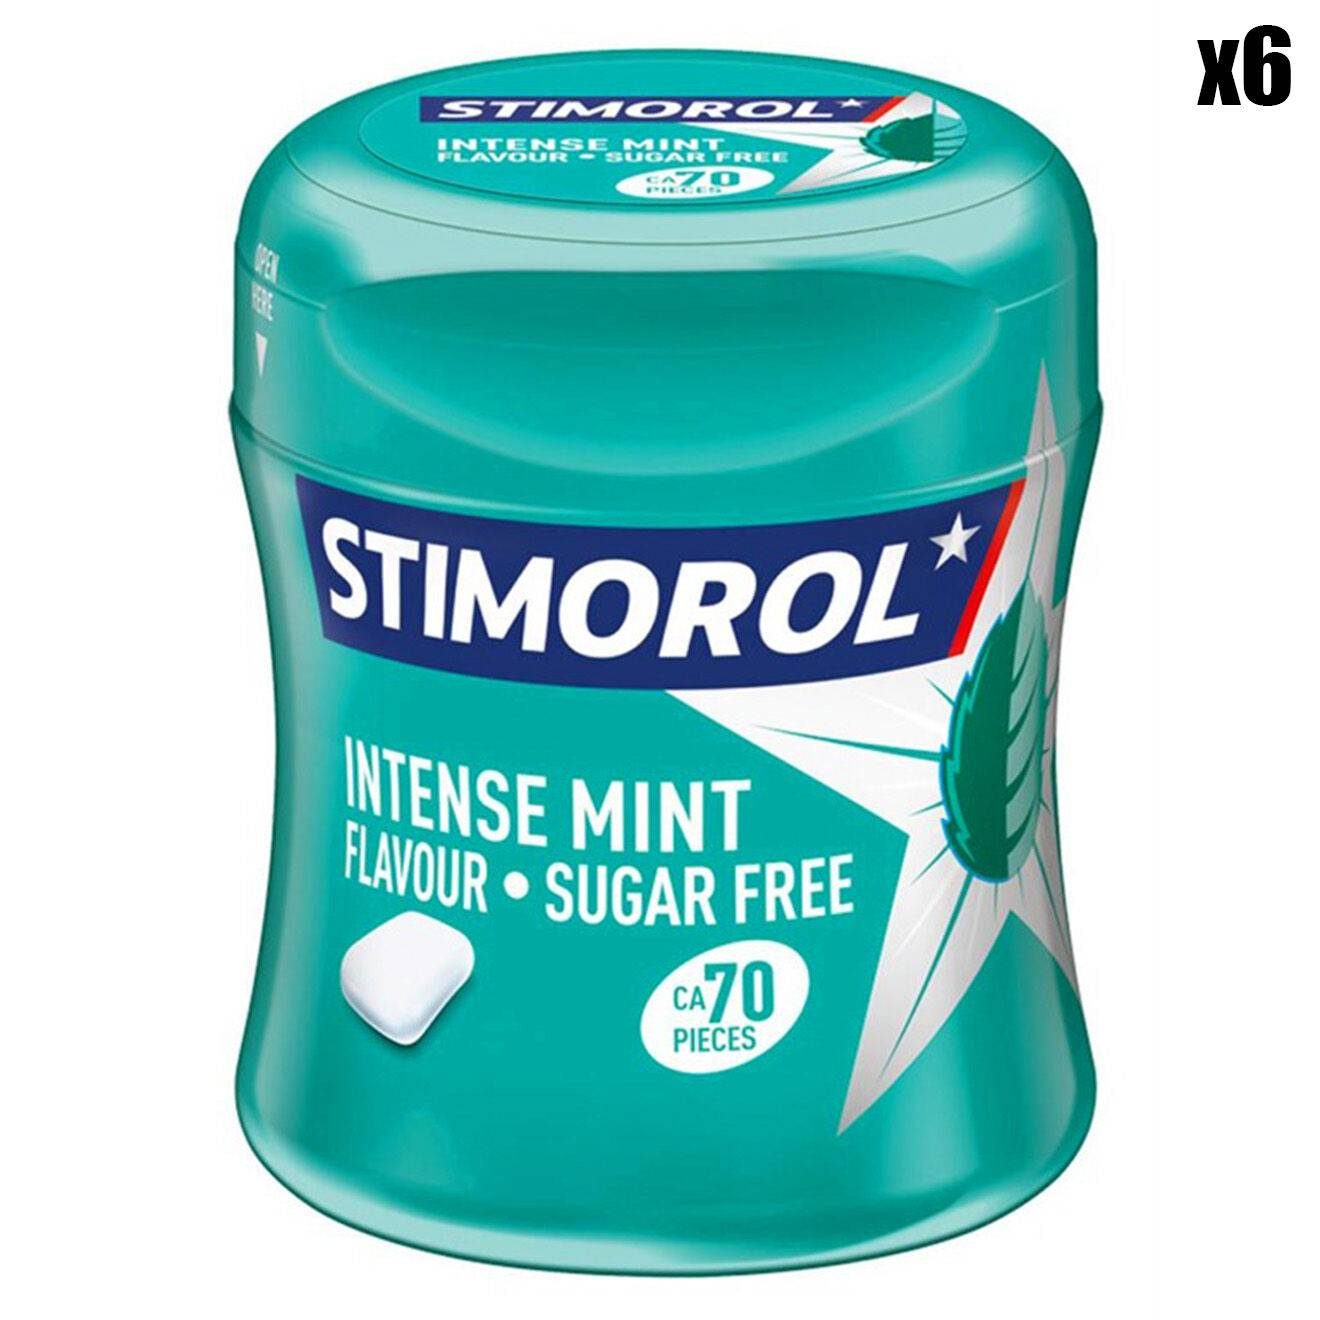 sitmorol - 6 Boîtes de Chewing-gums Intense Mint